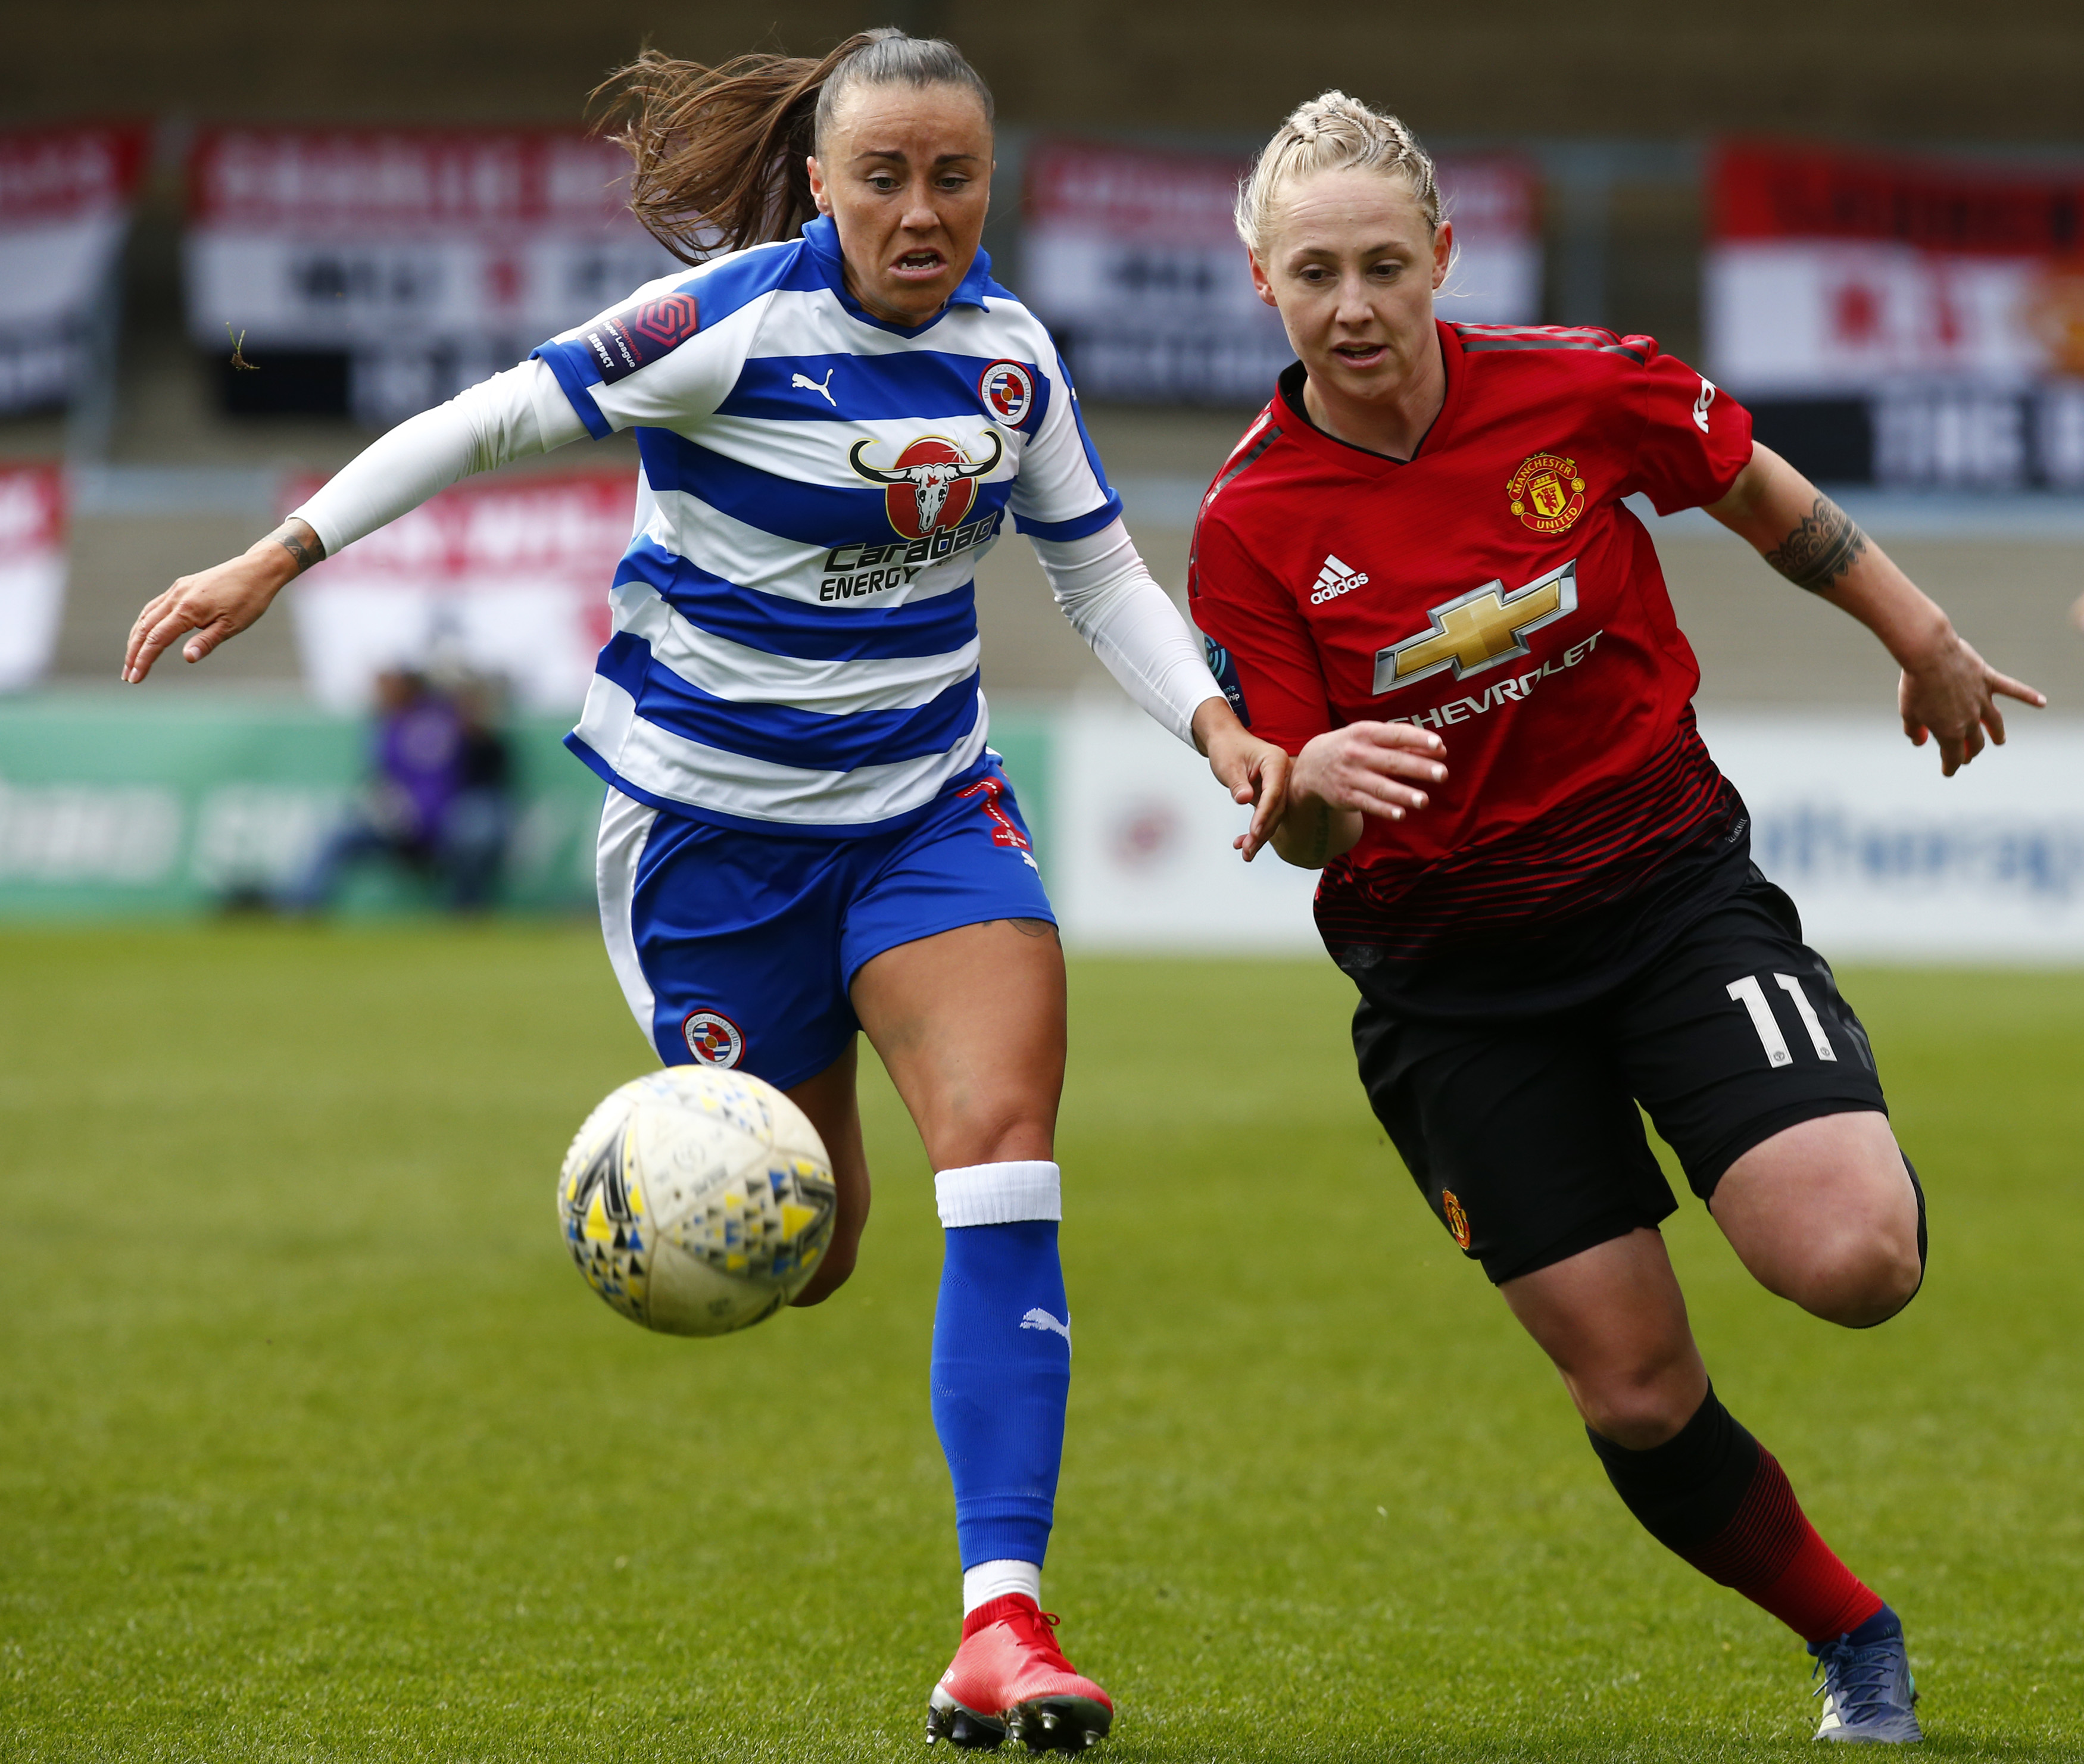 Reading FC Women v Manchester United Women - The SSE Womens FA Cup - Quarter Final